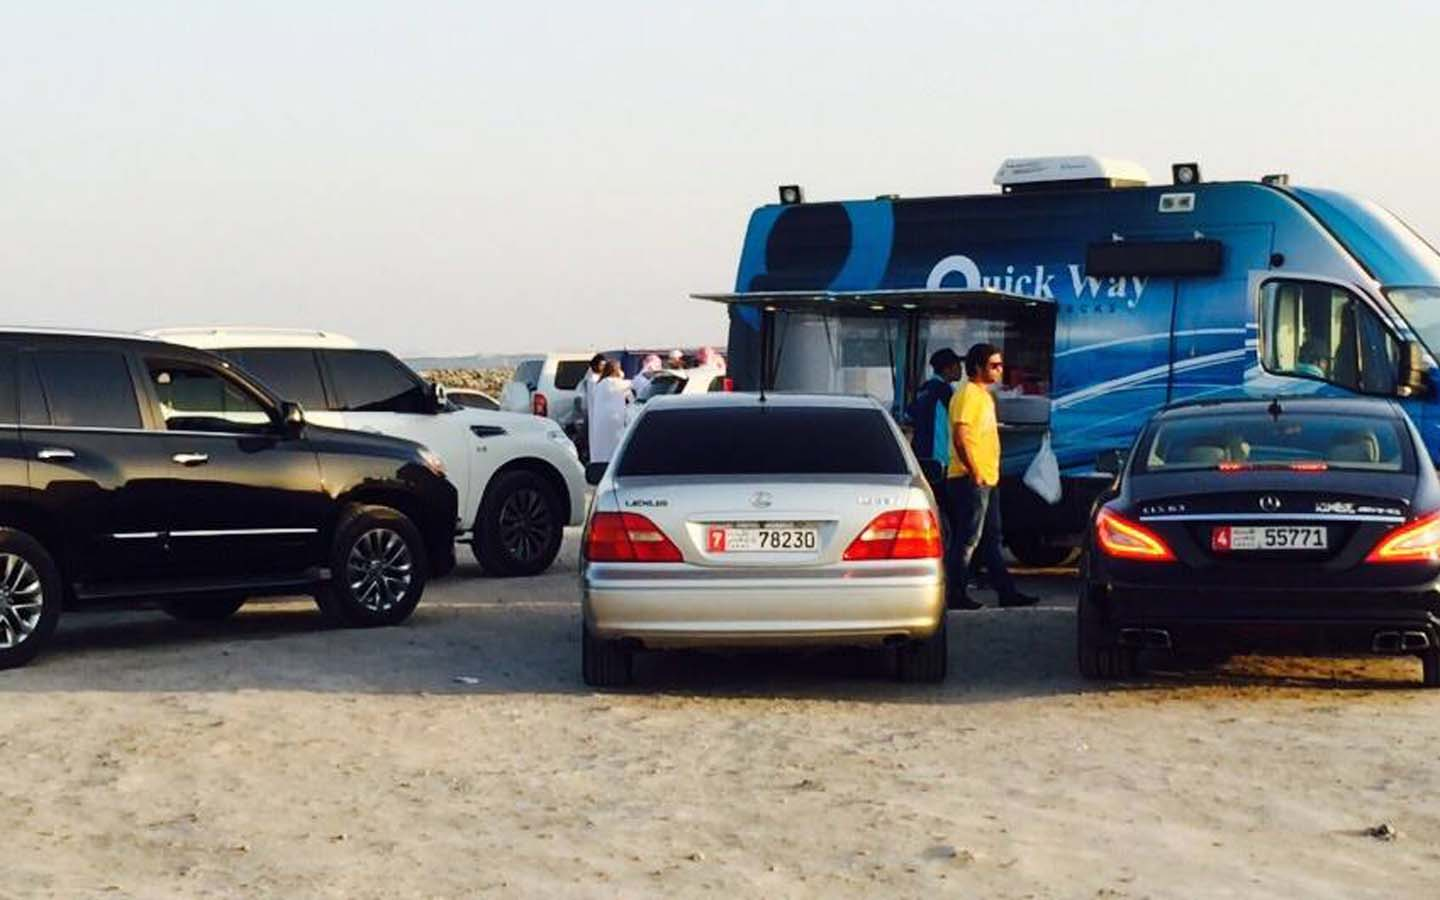 Quick Way is one of mobile food trucks in Abu Dhabi